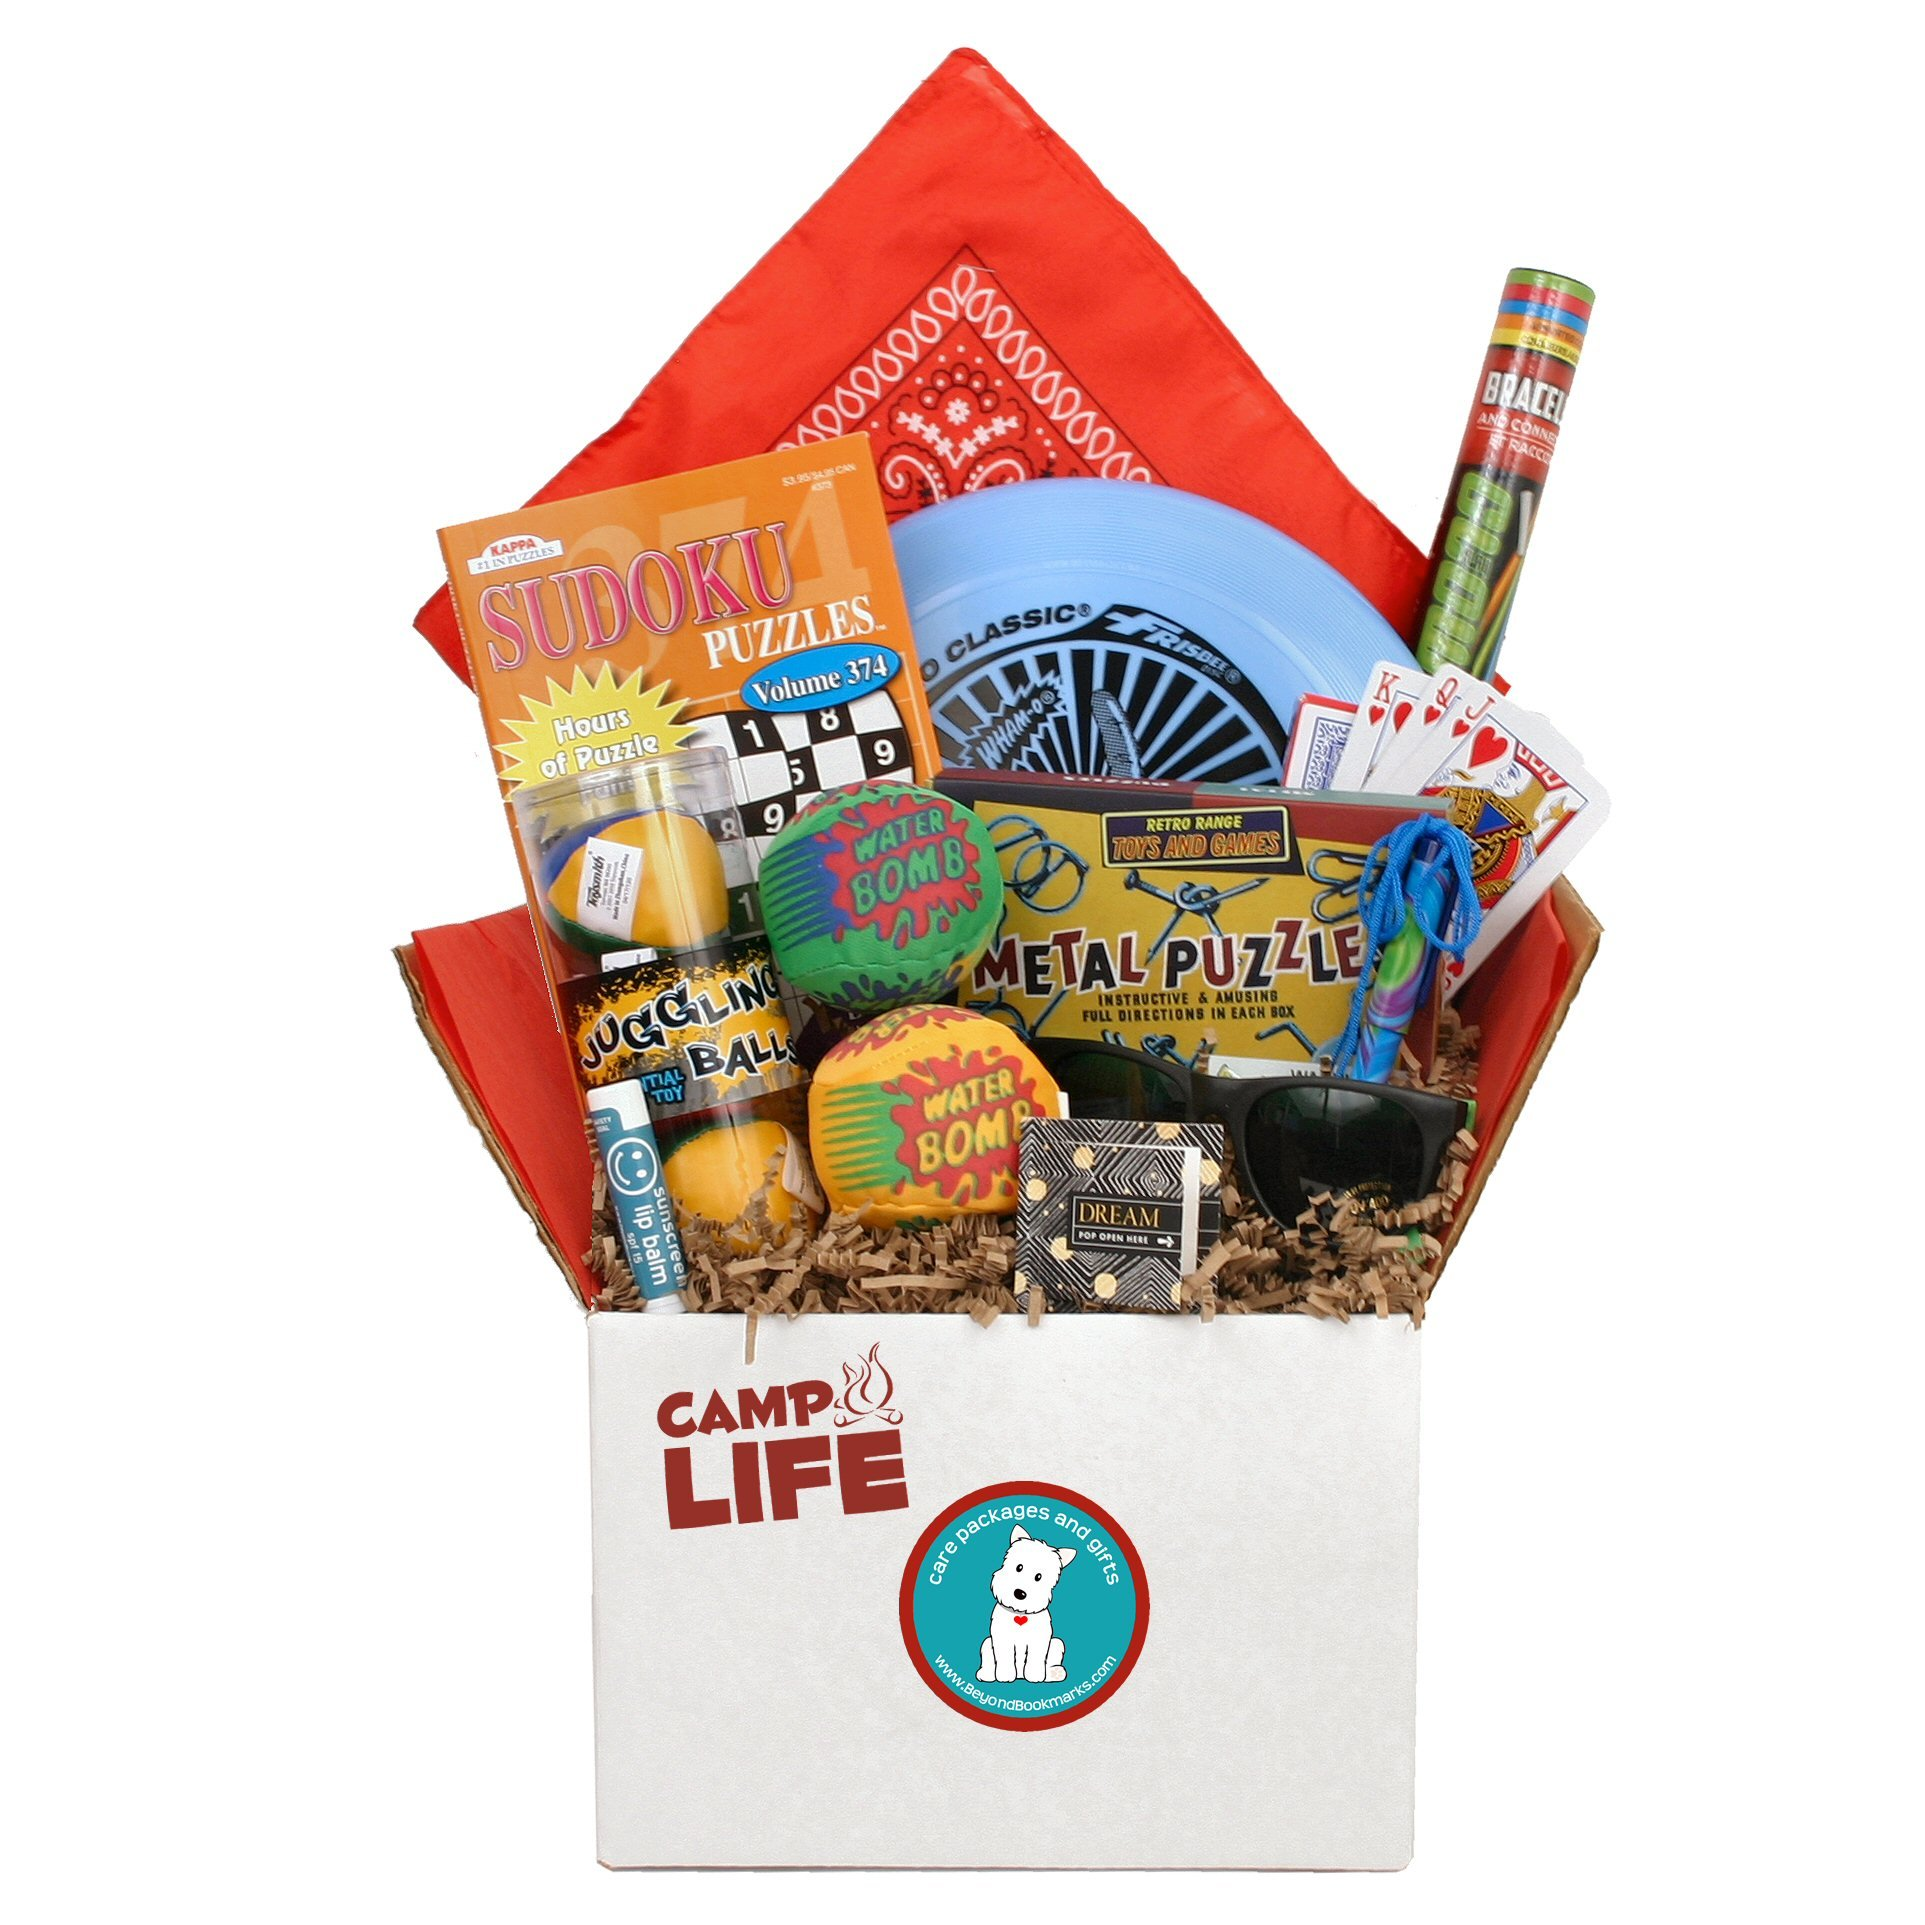 Beyond Bookmarks Camp Life - Summer Camp Care Package for Teens, Tweens & Counselors